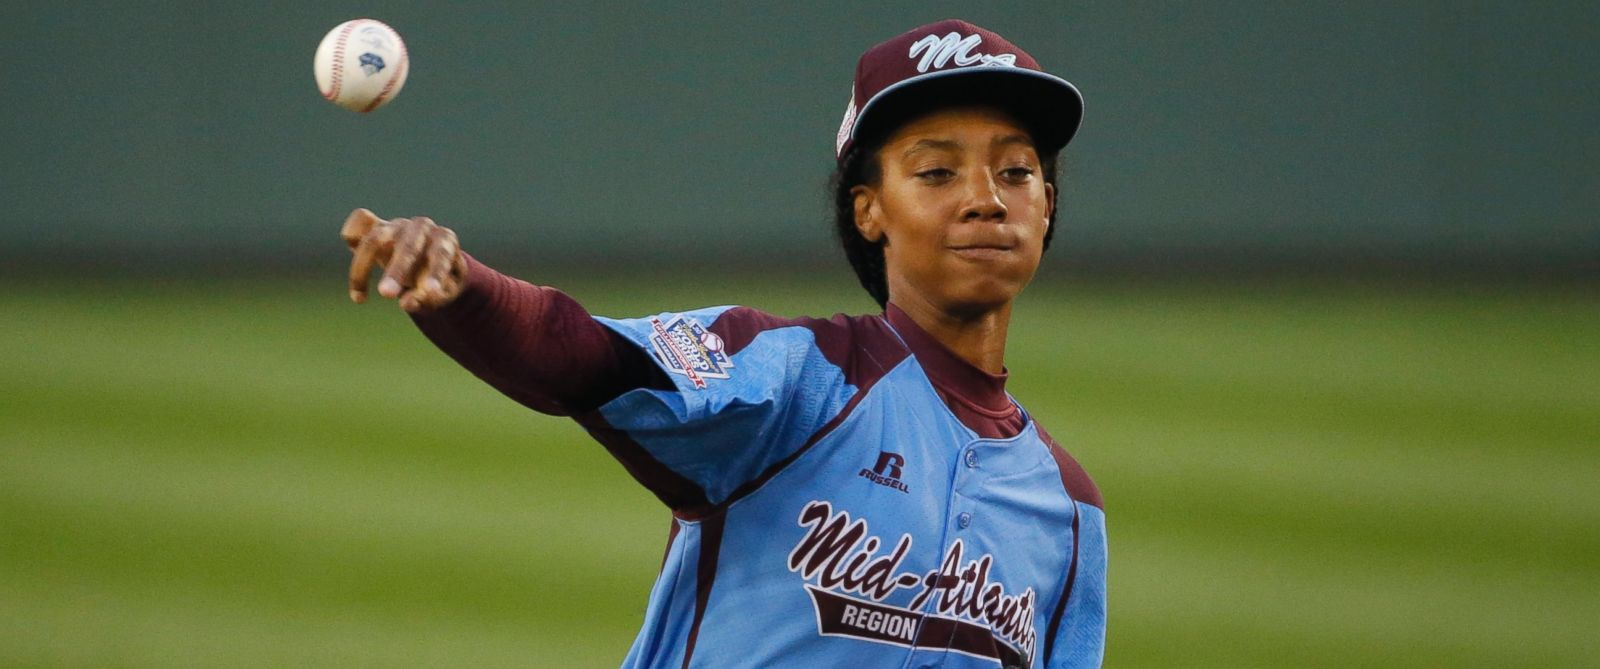 PHOTO: Philadelphia pitcher Mone Davis delivers in the first inning of a United States semi-final baseball game against Las Vegas at the Little League World Series tournament in South Williamsport, Pa., Aug. 20, 2014.